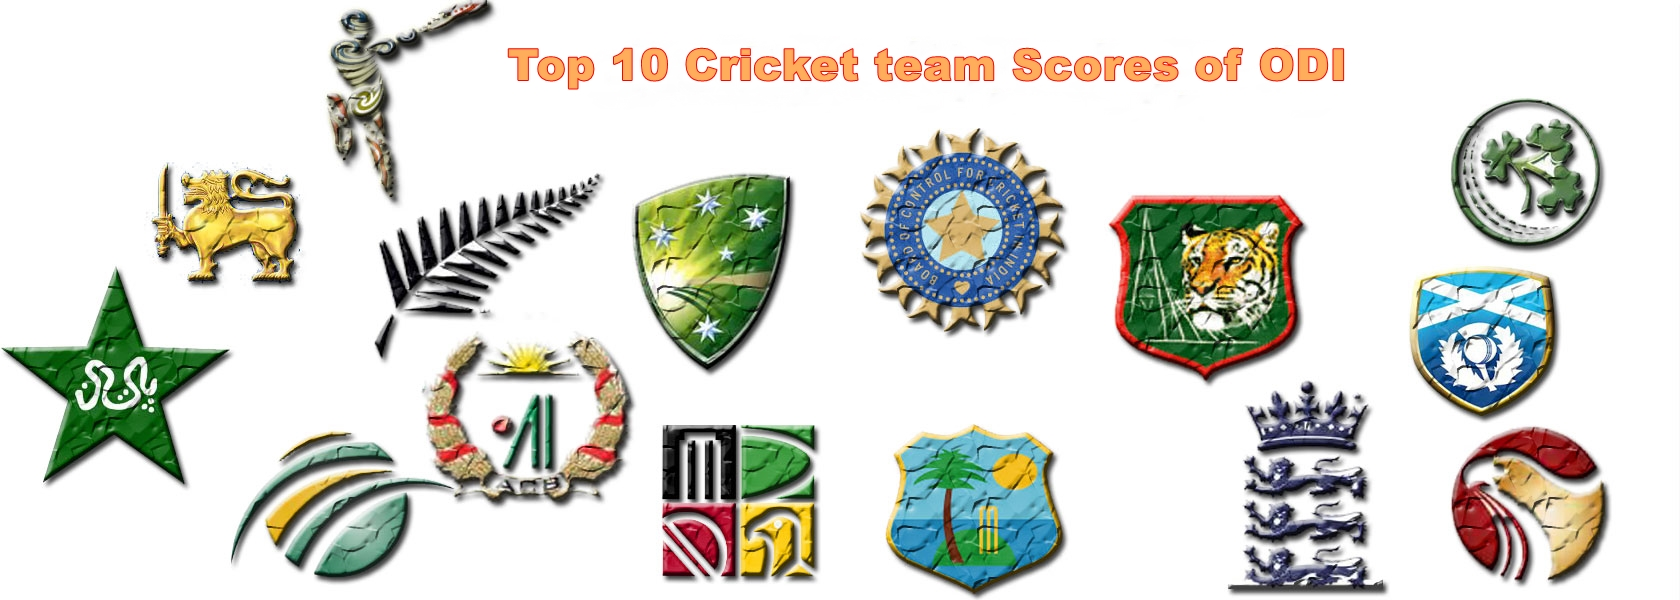 Top 10 scores of cricket teams